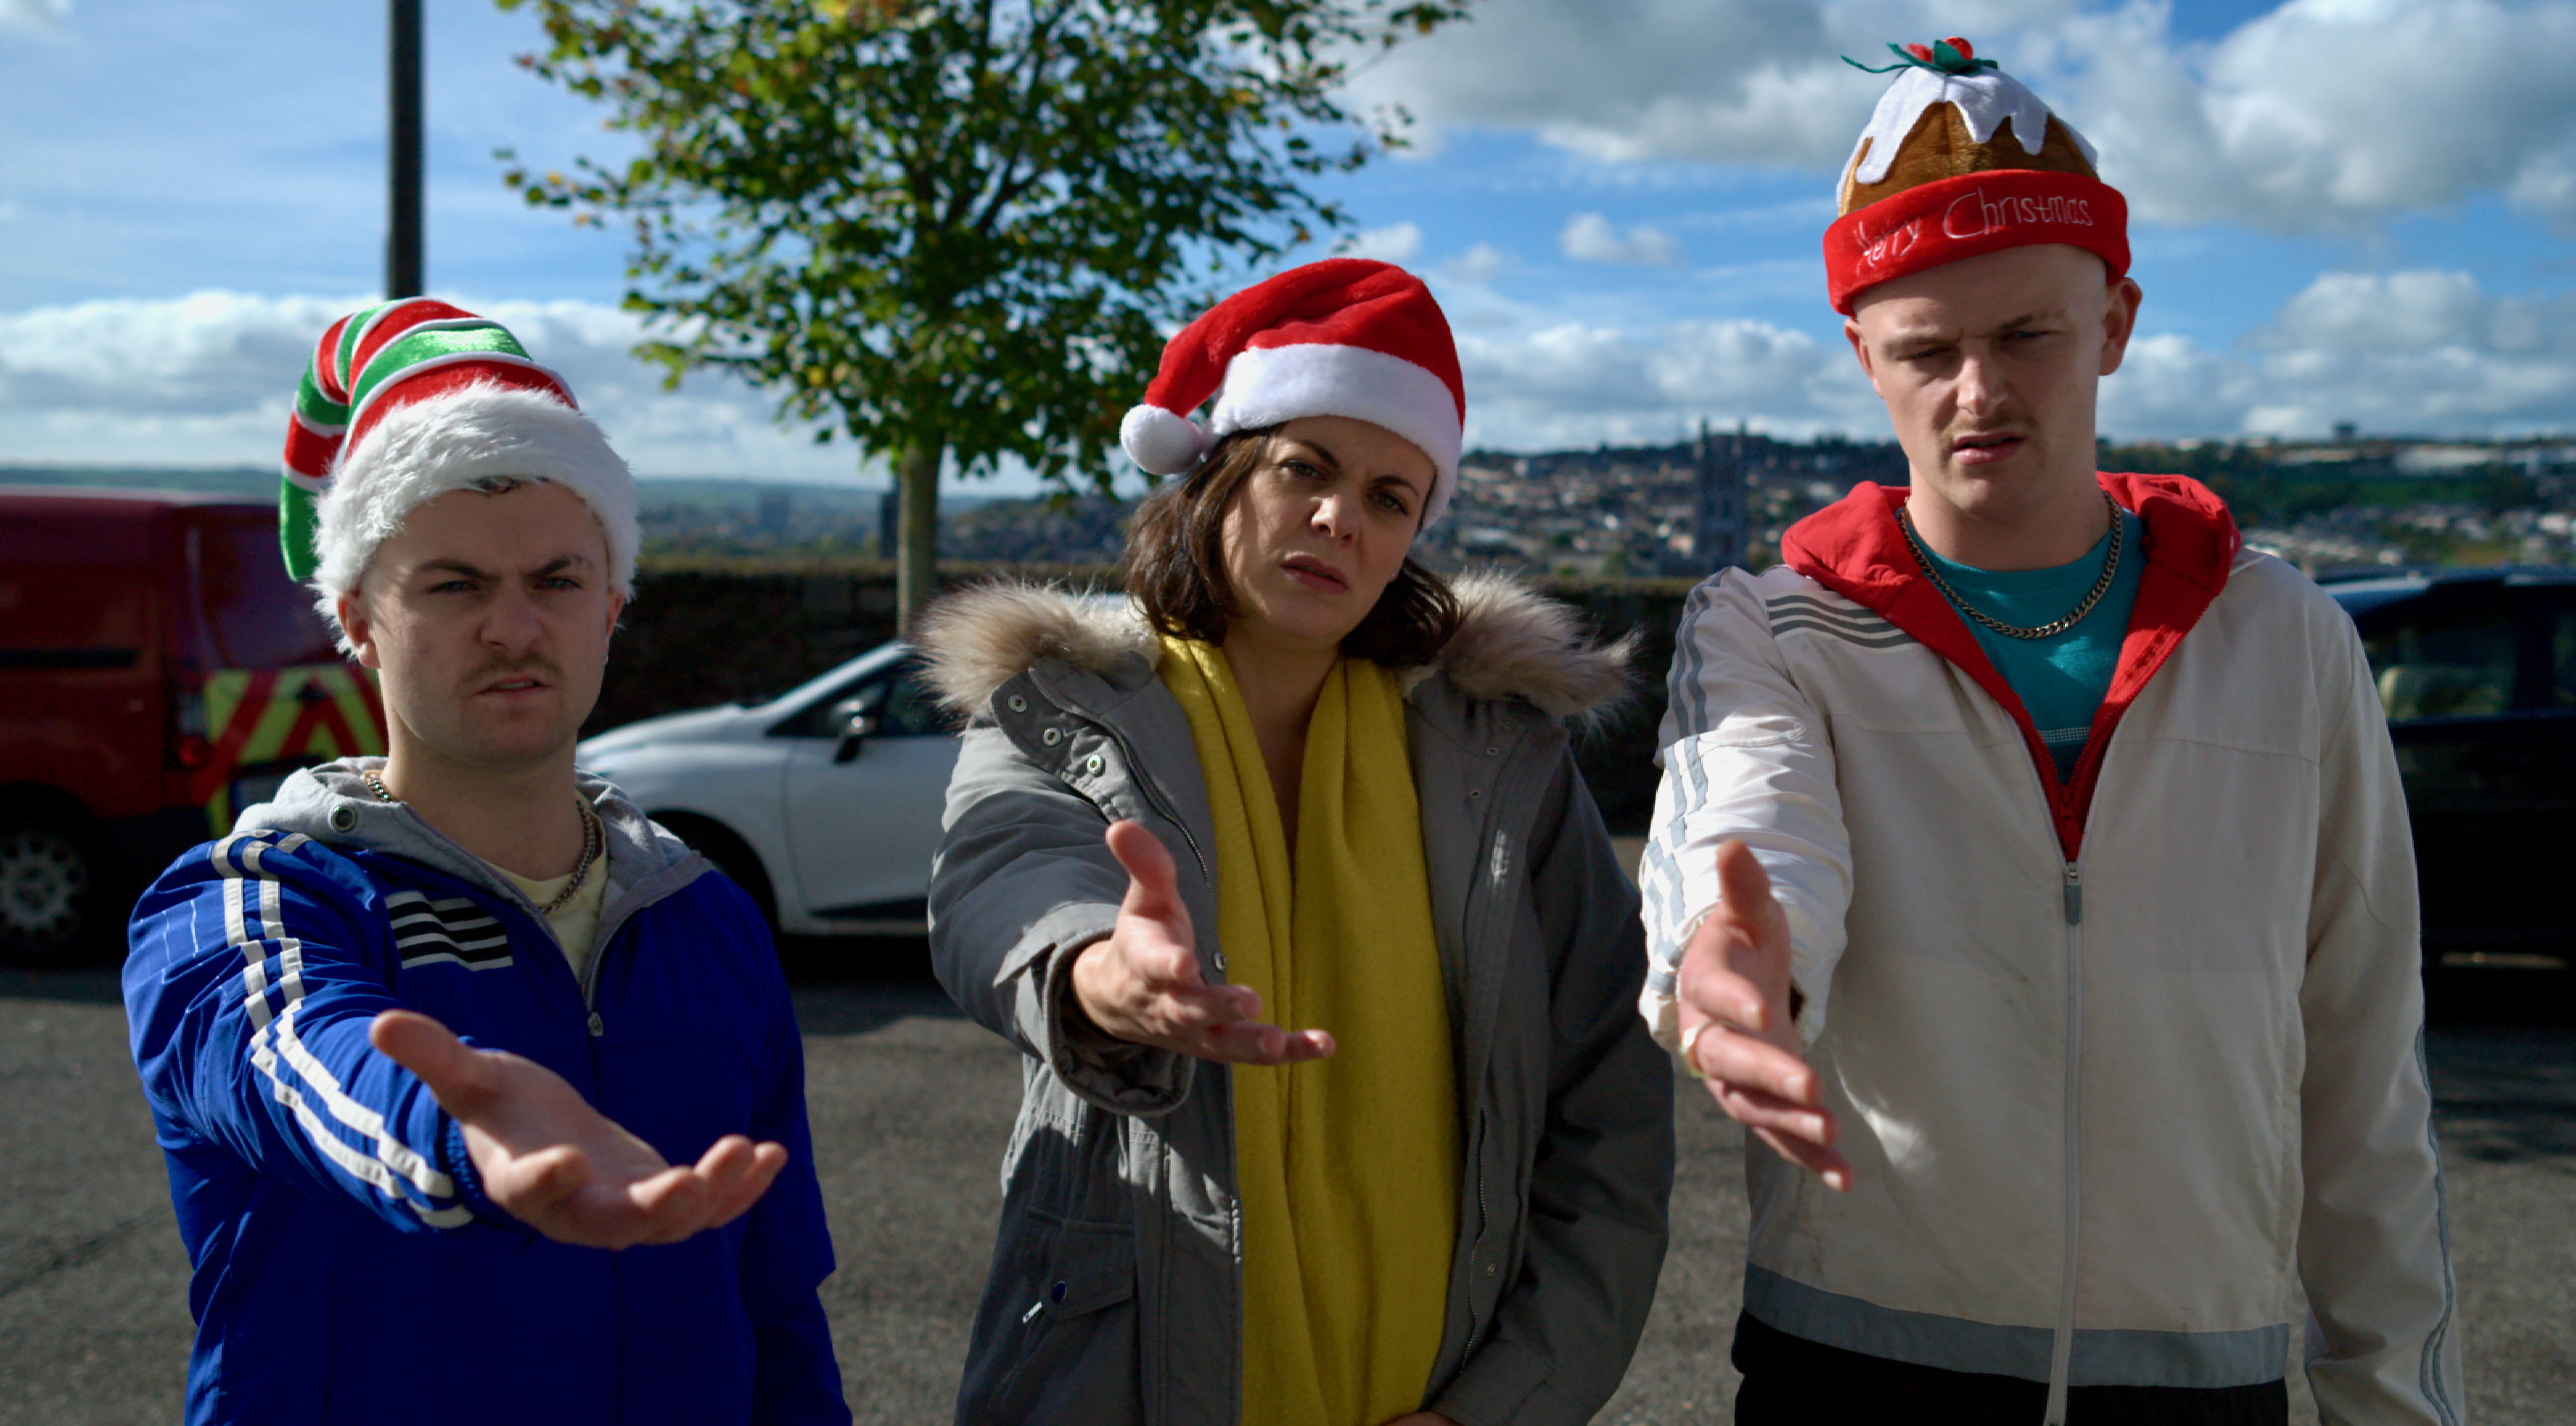 The Young Offenders Christmas Special